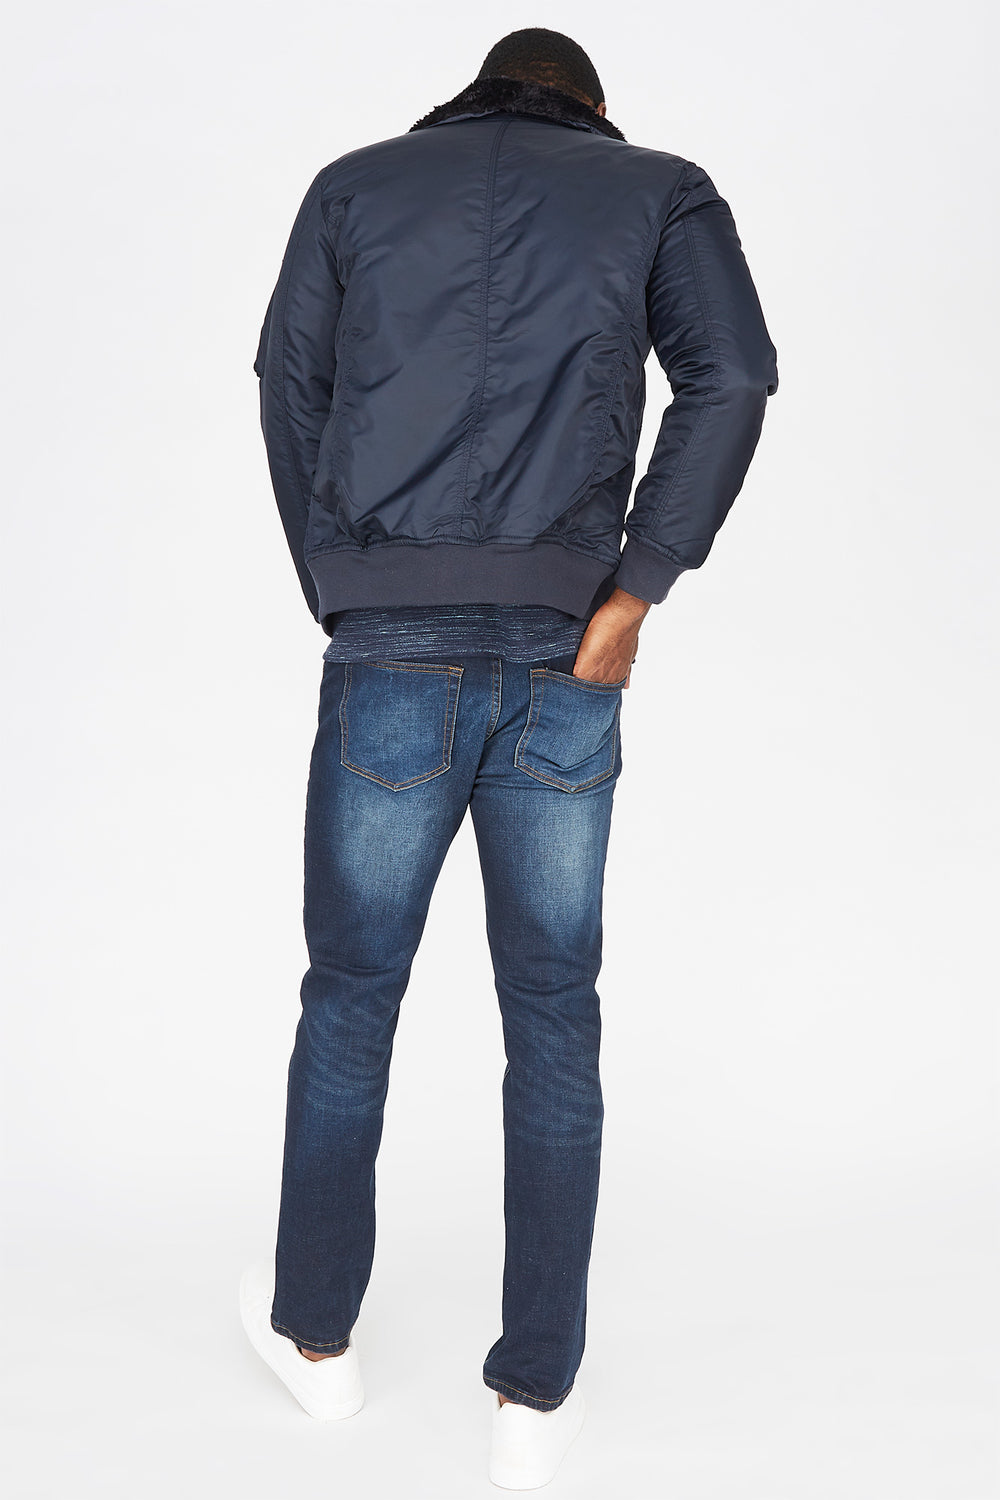 Dark Wash Slim Jean Navy Blue